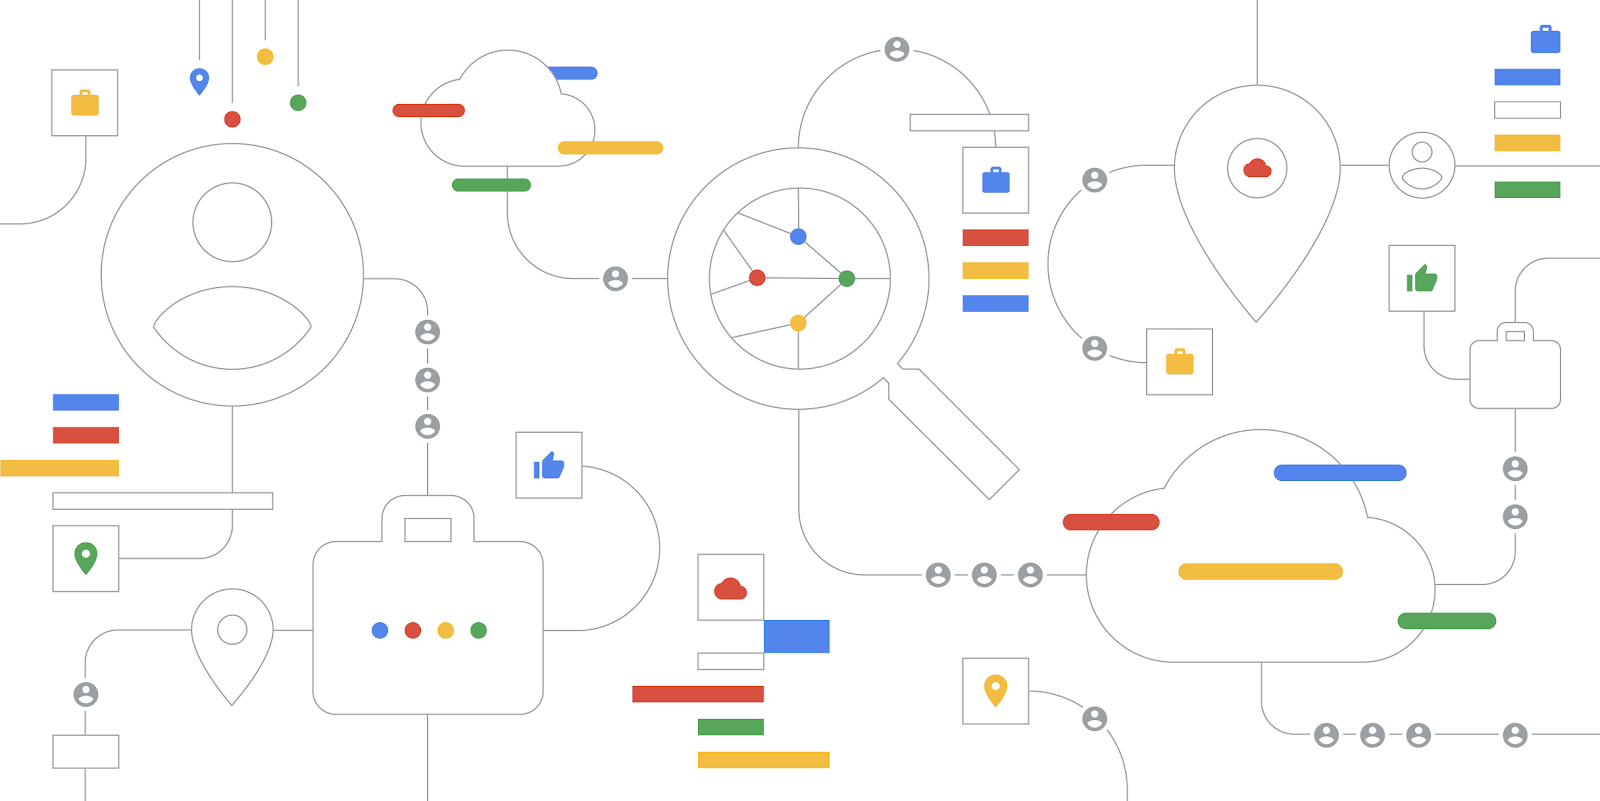 At Google Cloud My Job Is To Reimagine Enterprise U2014 The Tools We Build And  How We Design Them. Traditional Enterprise Products Donu0027t Reflect How  People Work ...